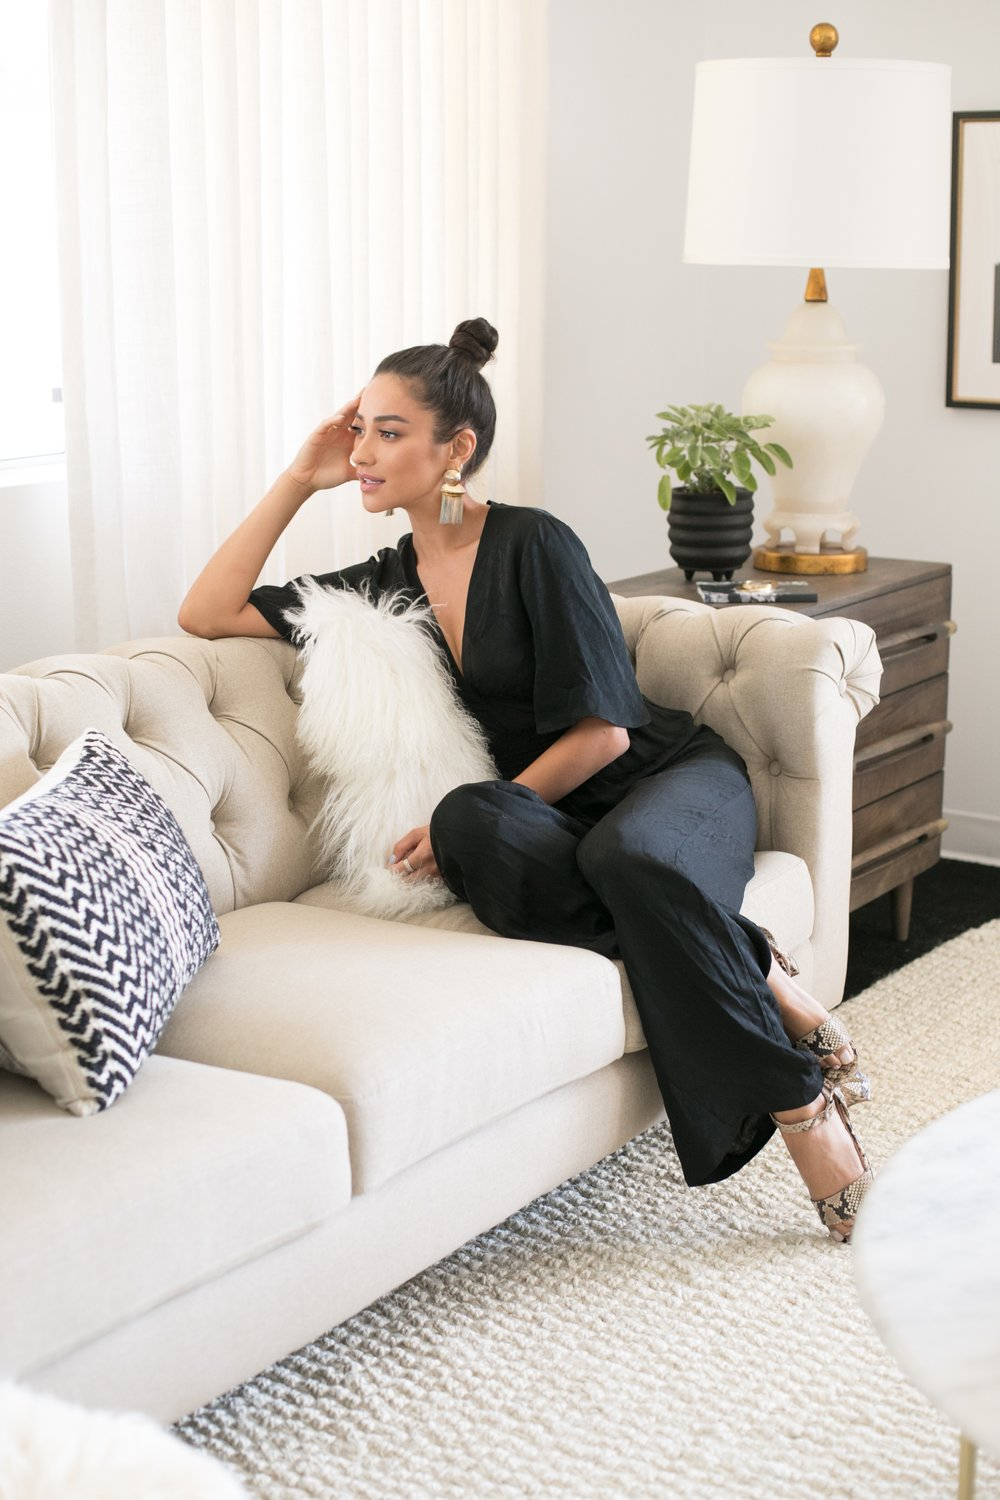 Shay Mitchell's Instagram Story Is Full of Stunning Home Office Inspiration - by LINDSEY LANQUISTpracticality—you want your space to be pretty enough that you genuinely enjoy spending time there, but not so distractingly pretty that you can't get any work done. Your desk chair should be comfy enough that you feel inspired to sit there working for hours on end, but not so cozy that it lulls you into the occasional nap. Your lights should be bright, but not blinding. Your colors engaging, but not overwhelming.The whole thing is a challenge. But it's one Shay Mitchell has mastered—with the help of an expert team, of course. And she took to Instagram to give fans a glimpse at the stunning space her team's hard work has produced.